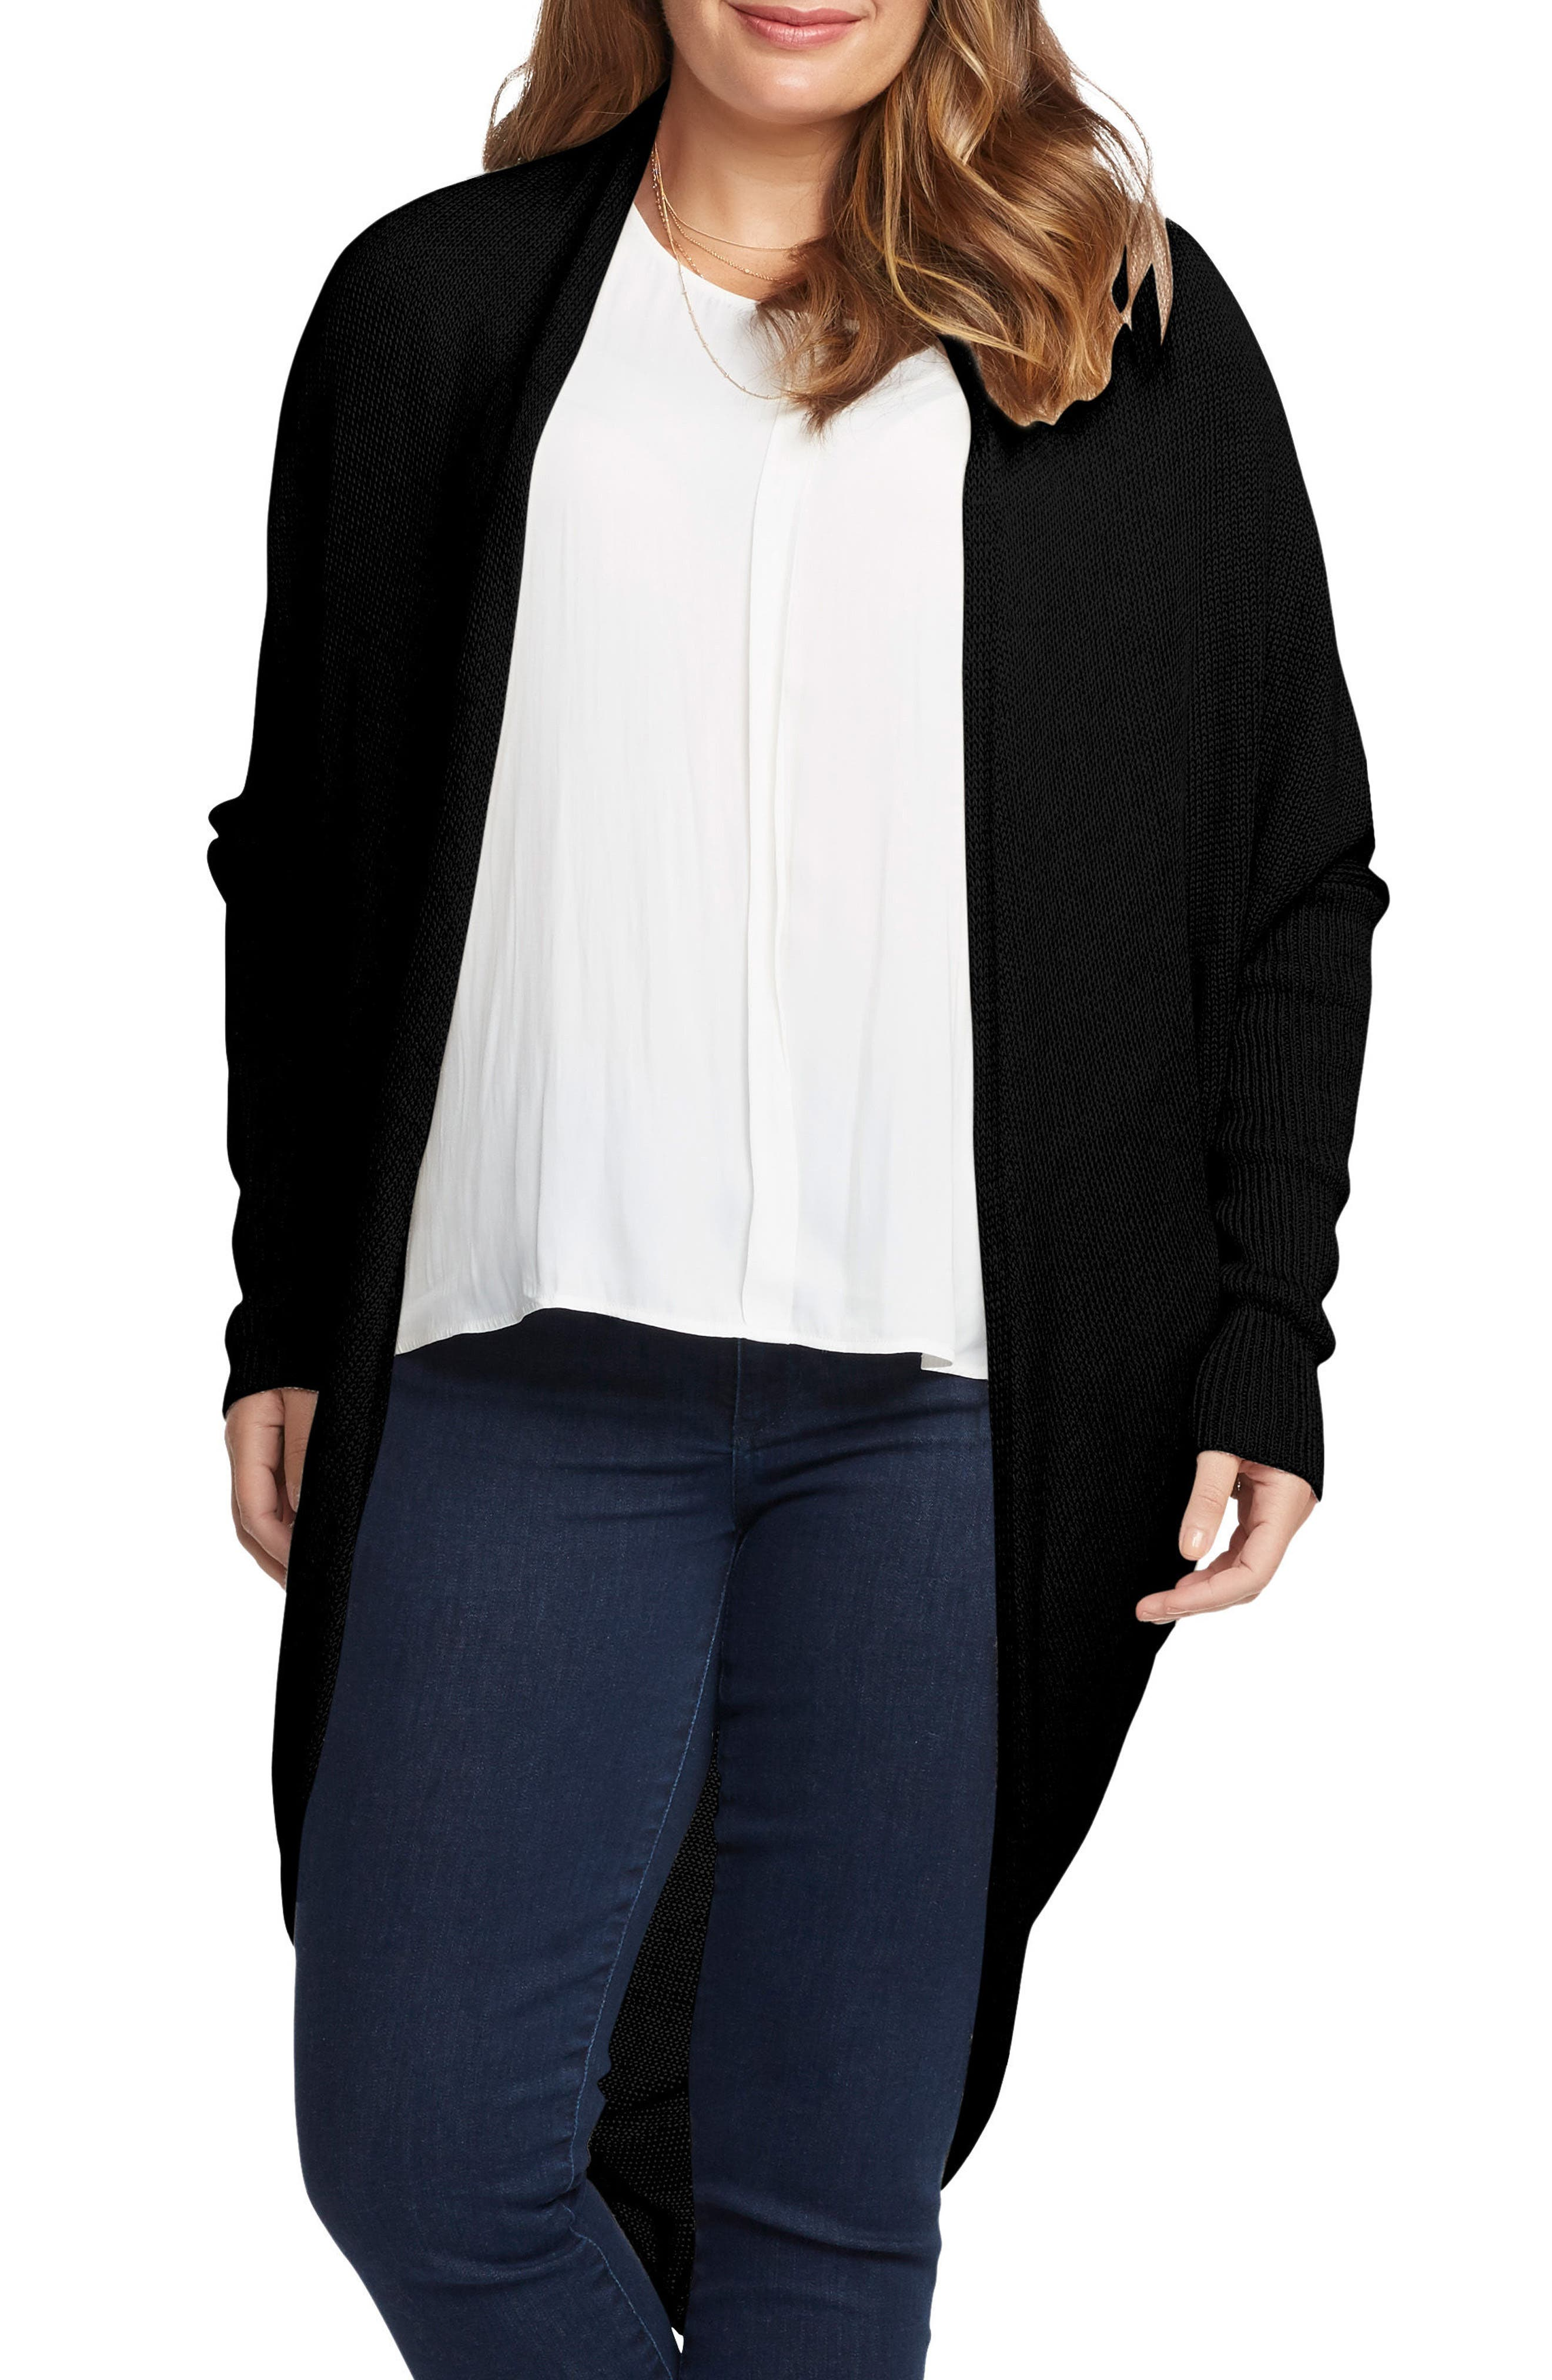 Tart Darla Linen Blend Open Cardigan (Plus Size)